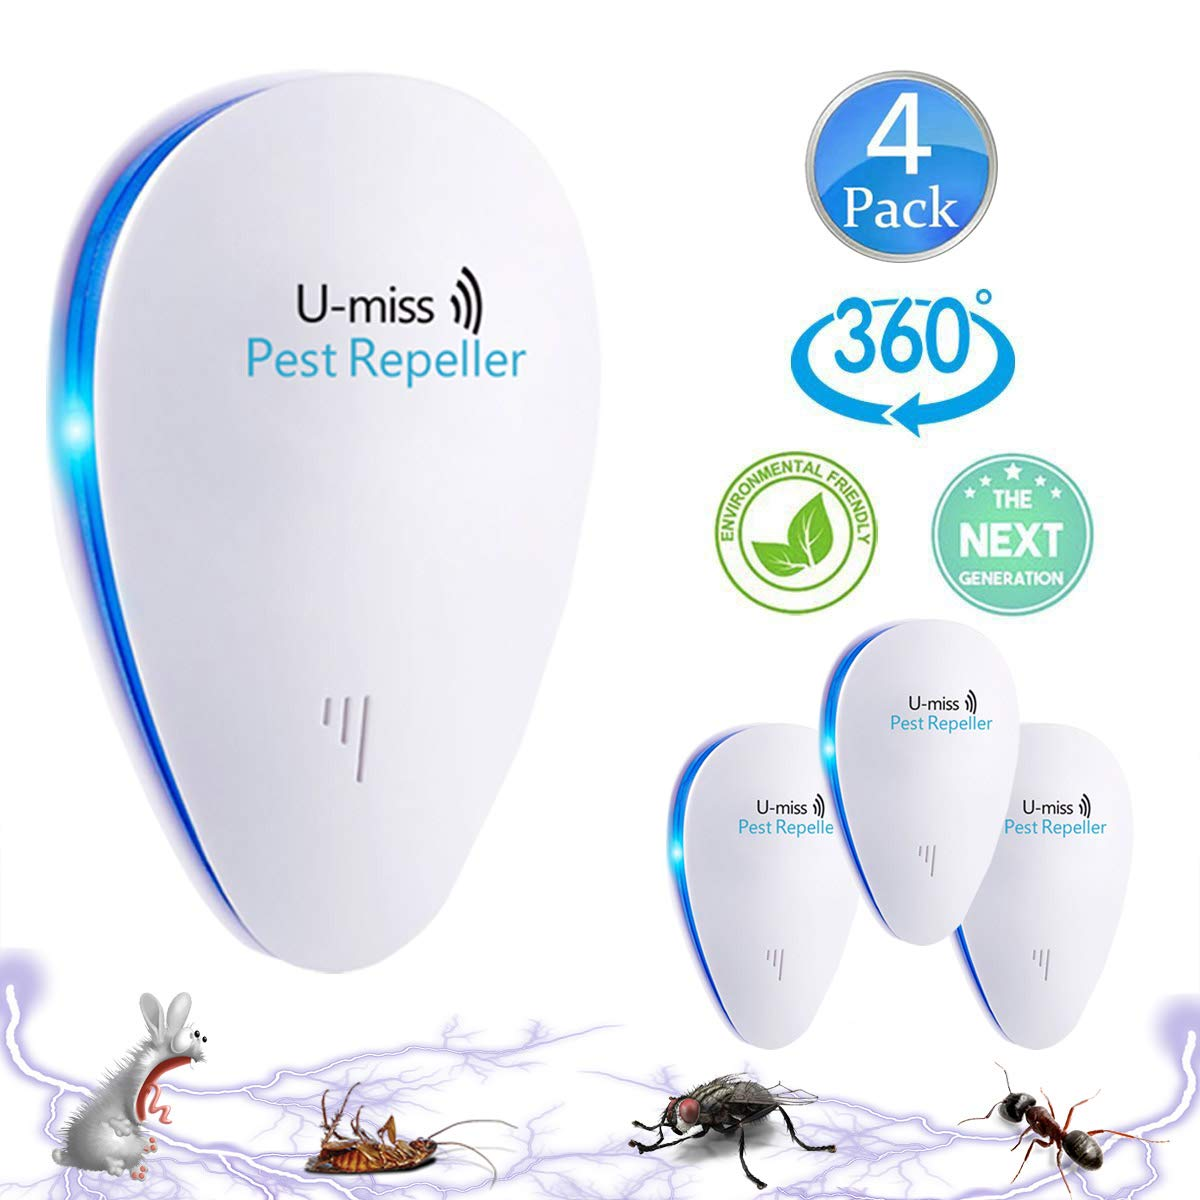 U-MISS [2018 New] Ultrasonic Pest RepellerIndoor Pest Control Ultrasonic Insect Repellent For Cockroach, Mice, Rodents, Spiders, Flies, Ants, Fleas (2pack)